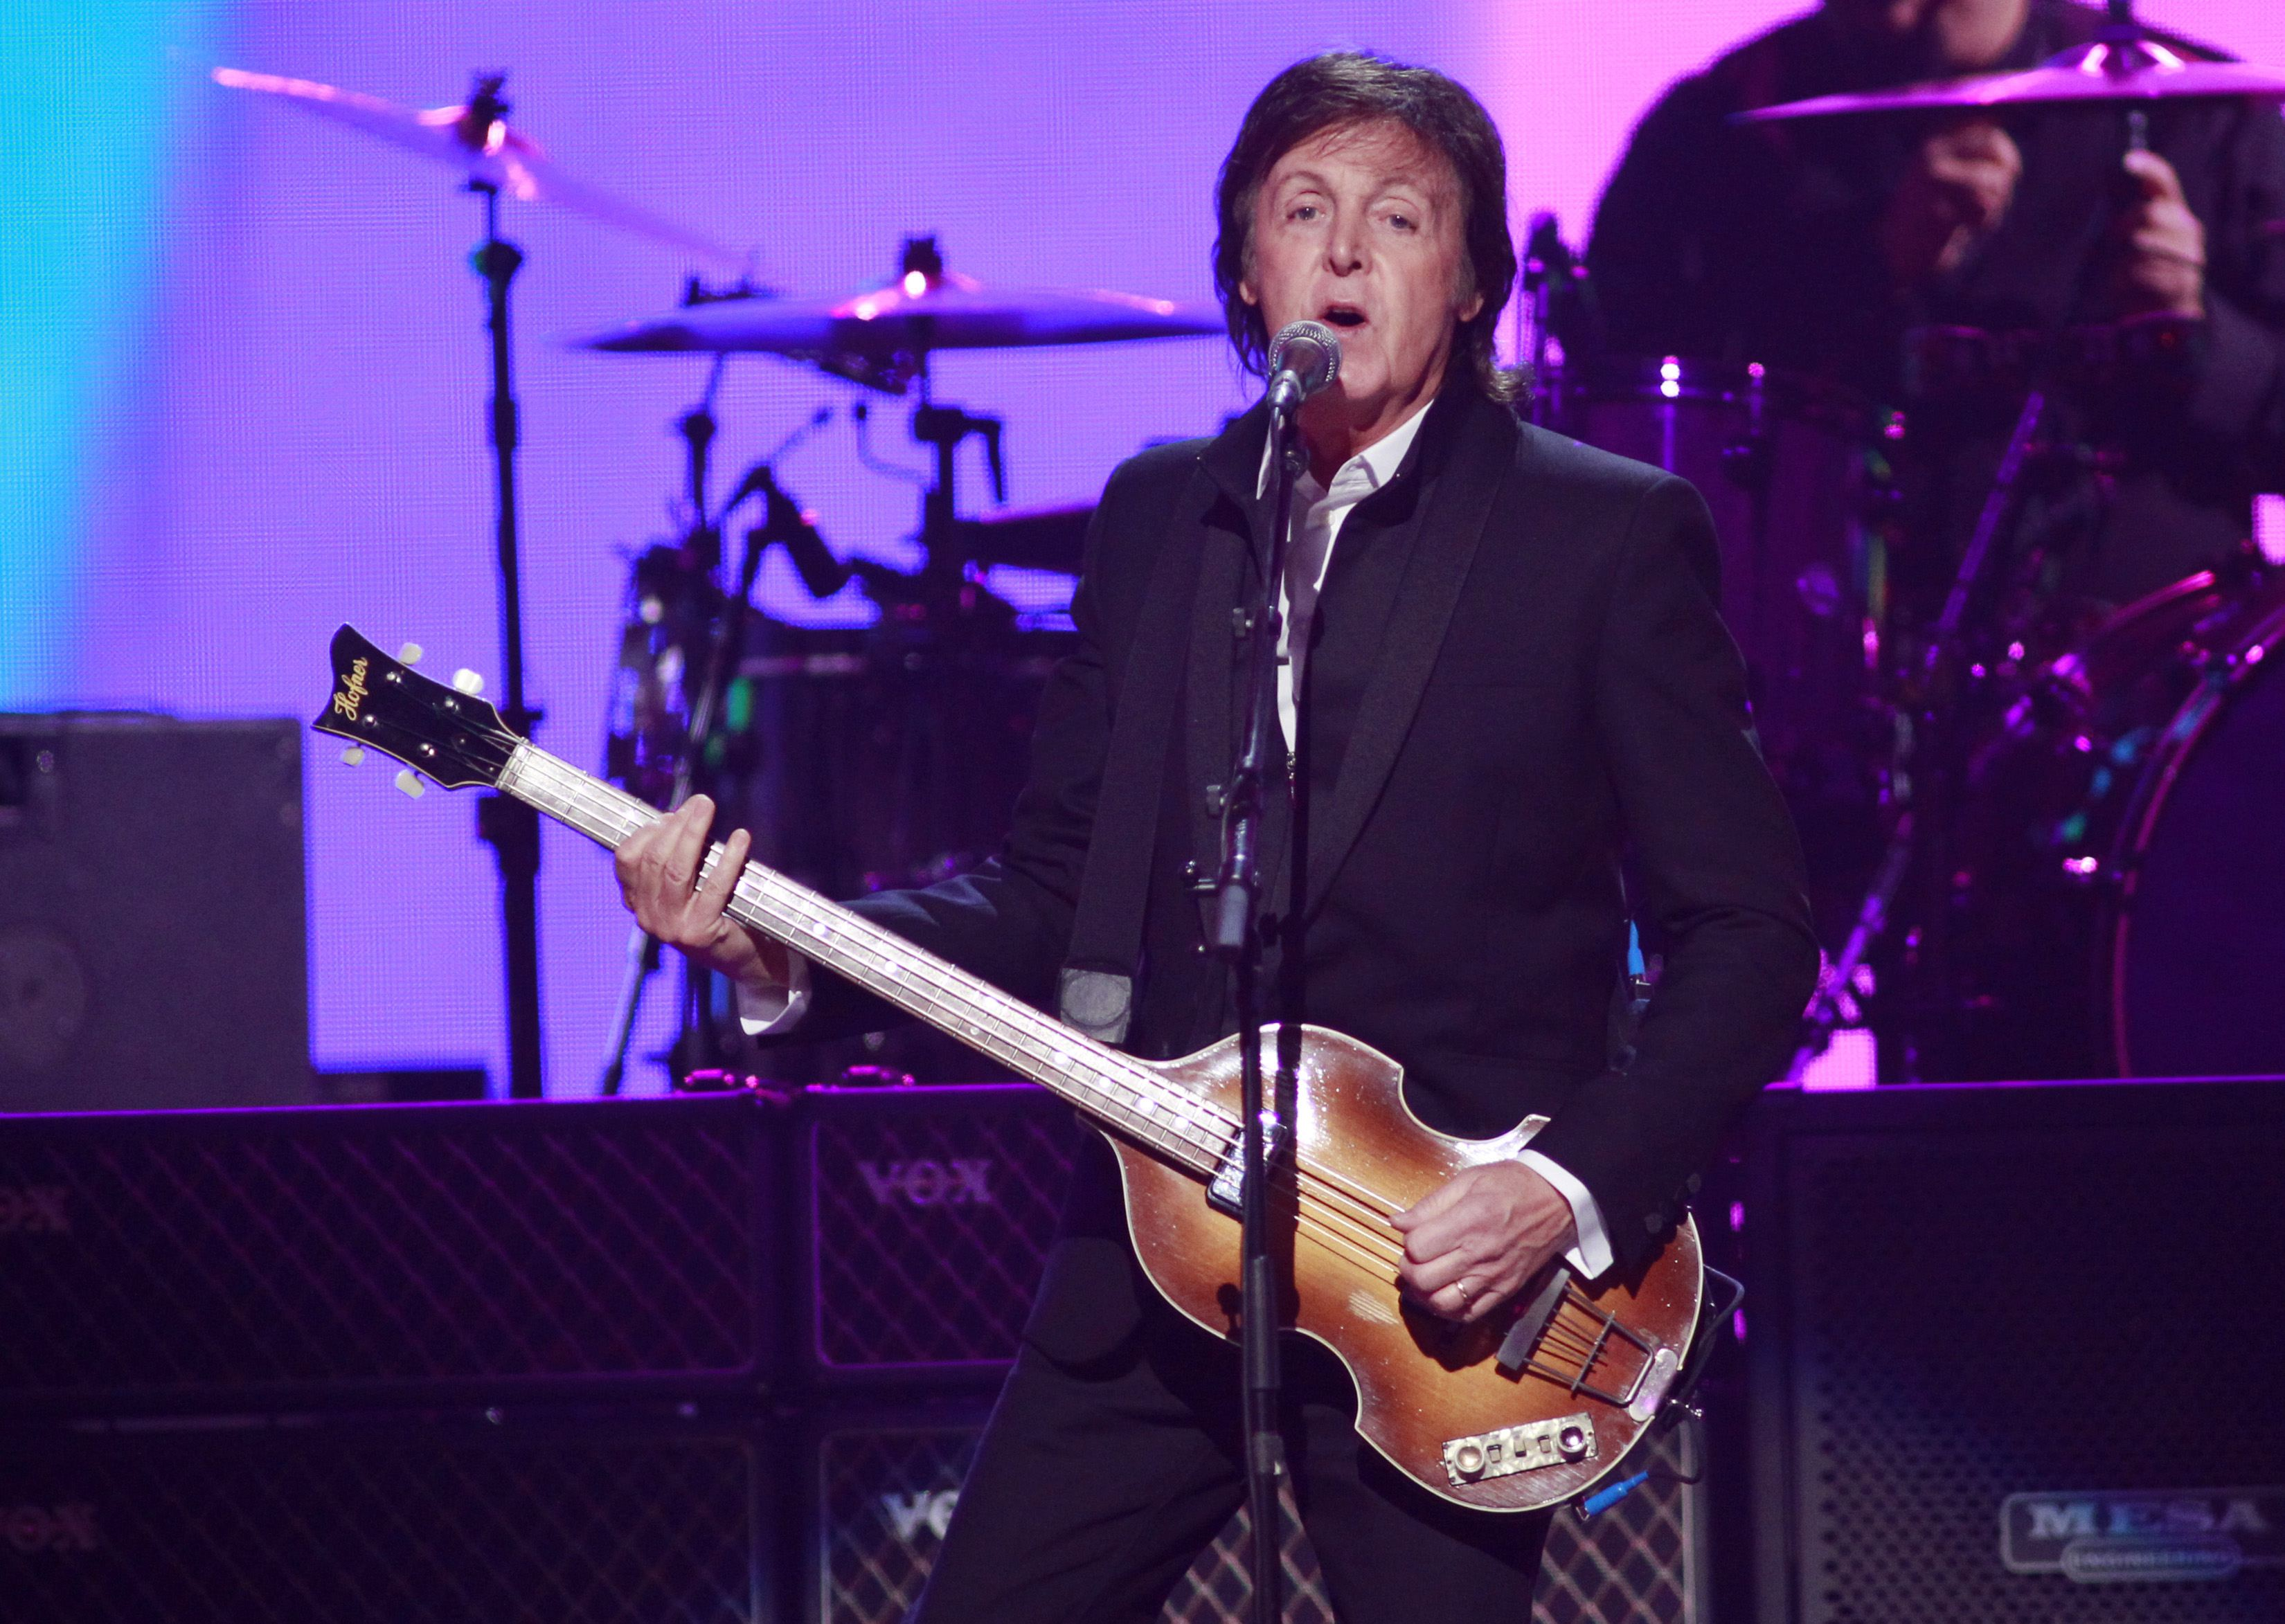 Paul McCartney en Chile: Asegura inédito show de tres horas